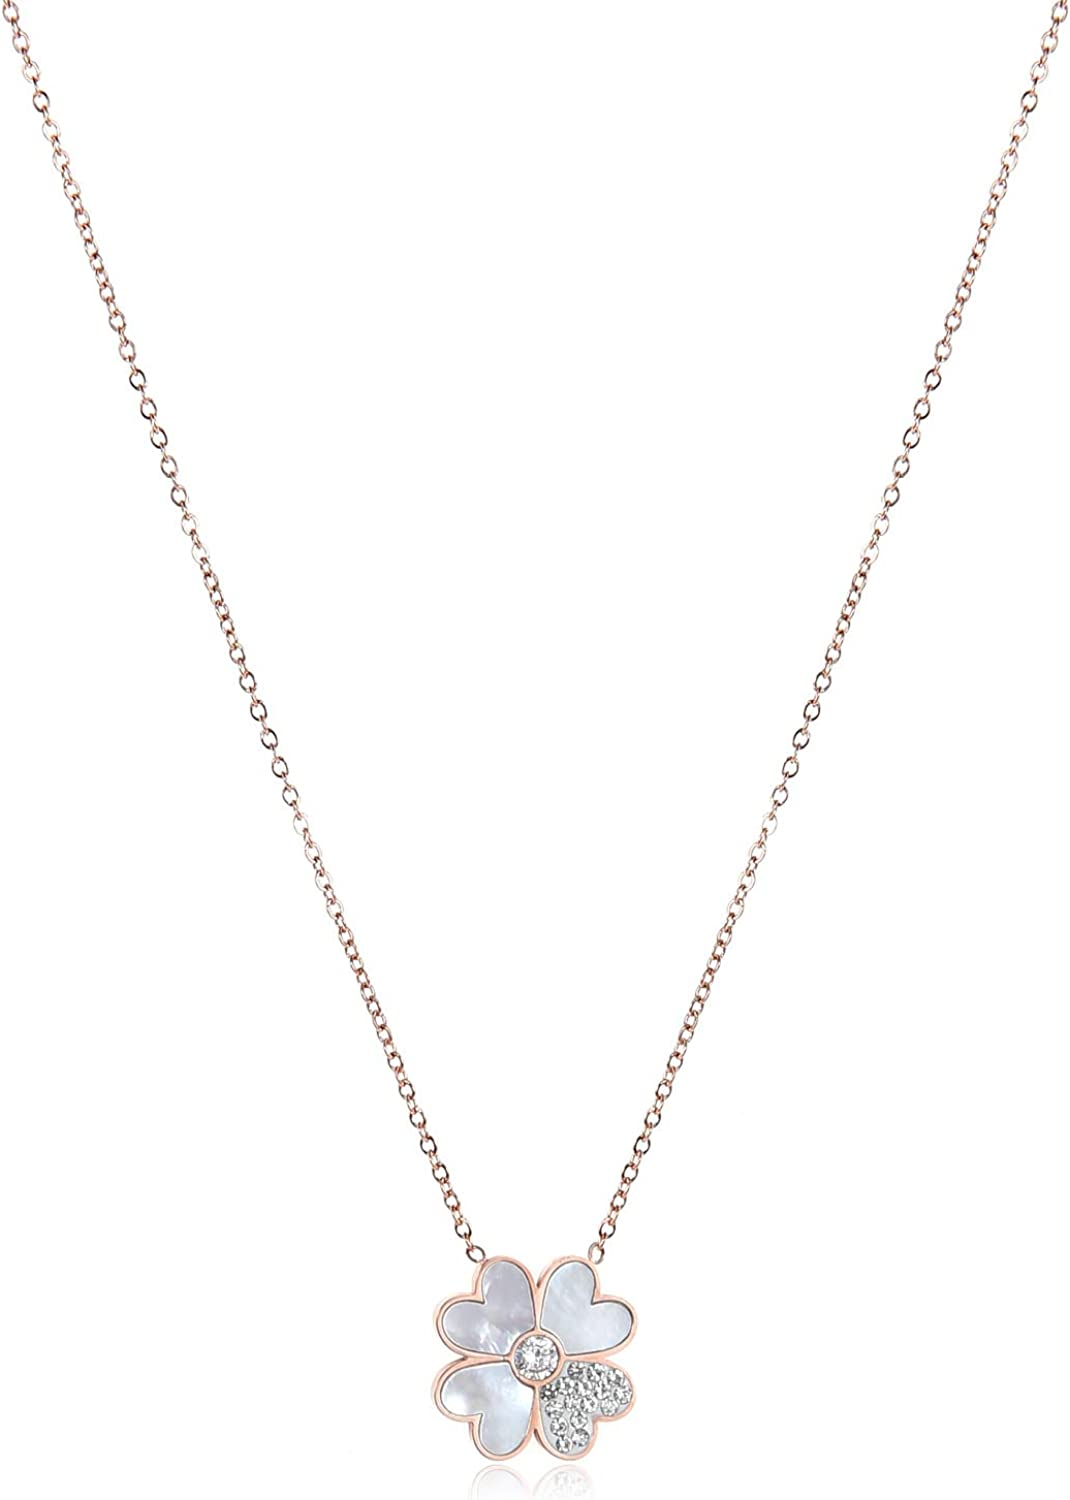 366DAYS Valentine's Day Jewelry Gift Stainless Selling and selling Titani 316l Max 47% OFF Steel